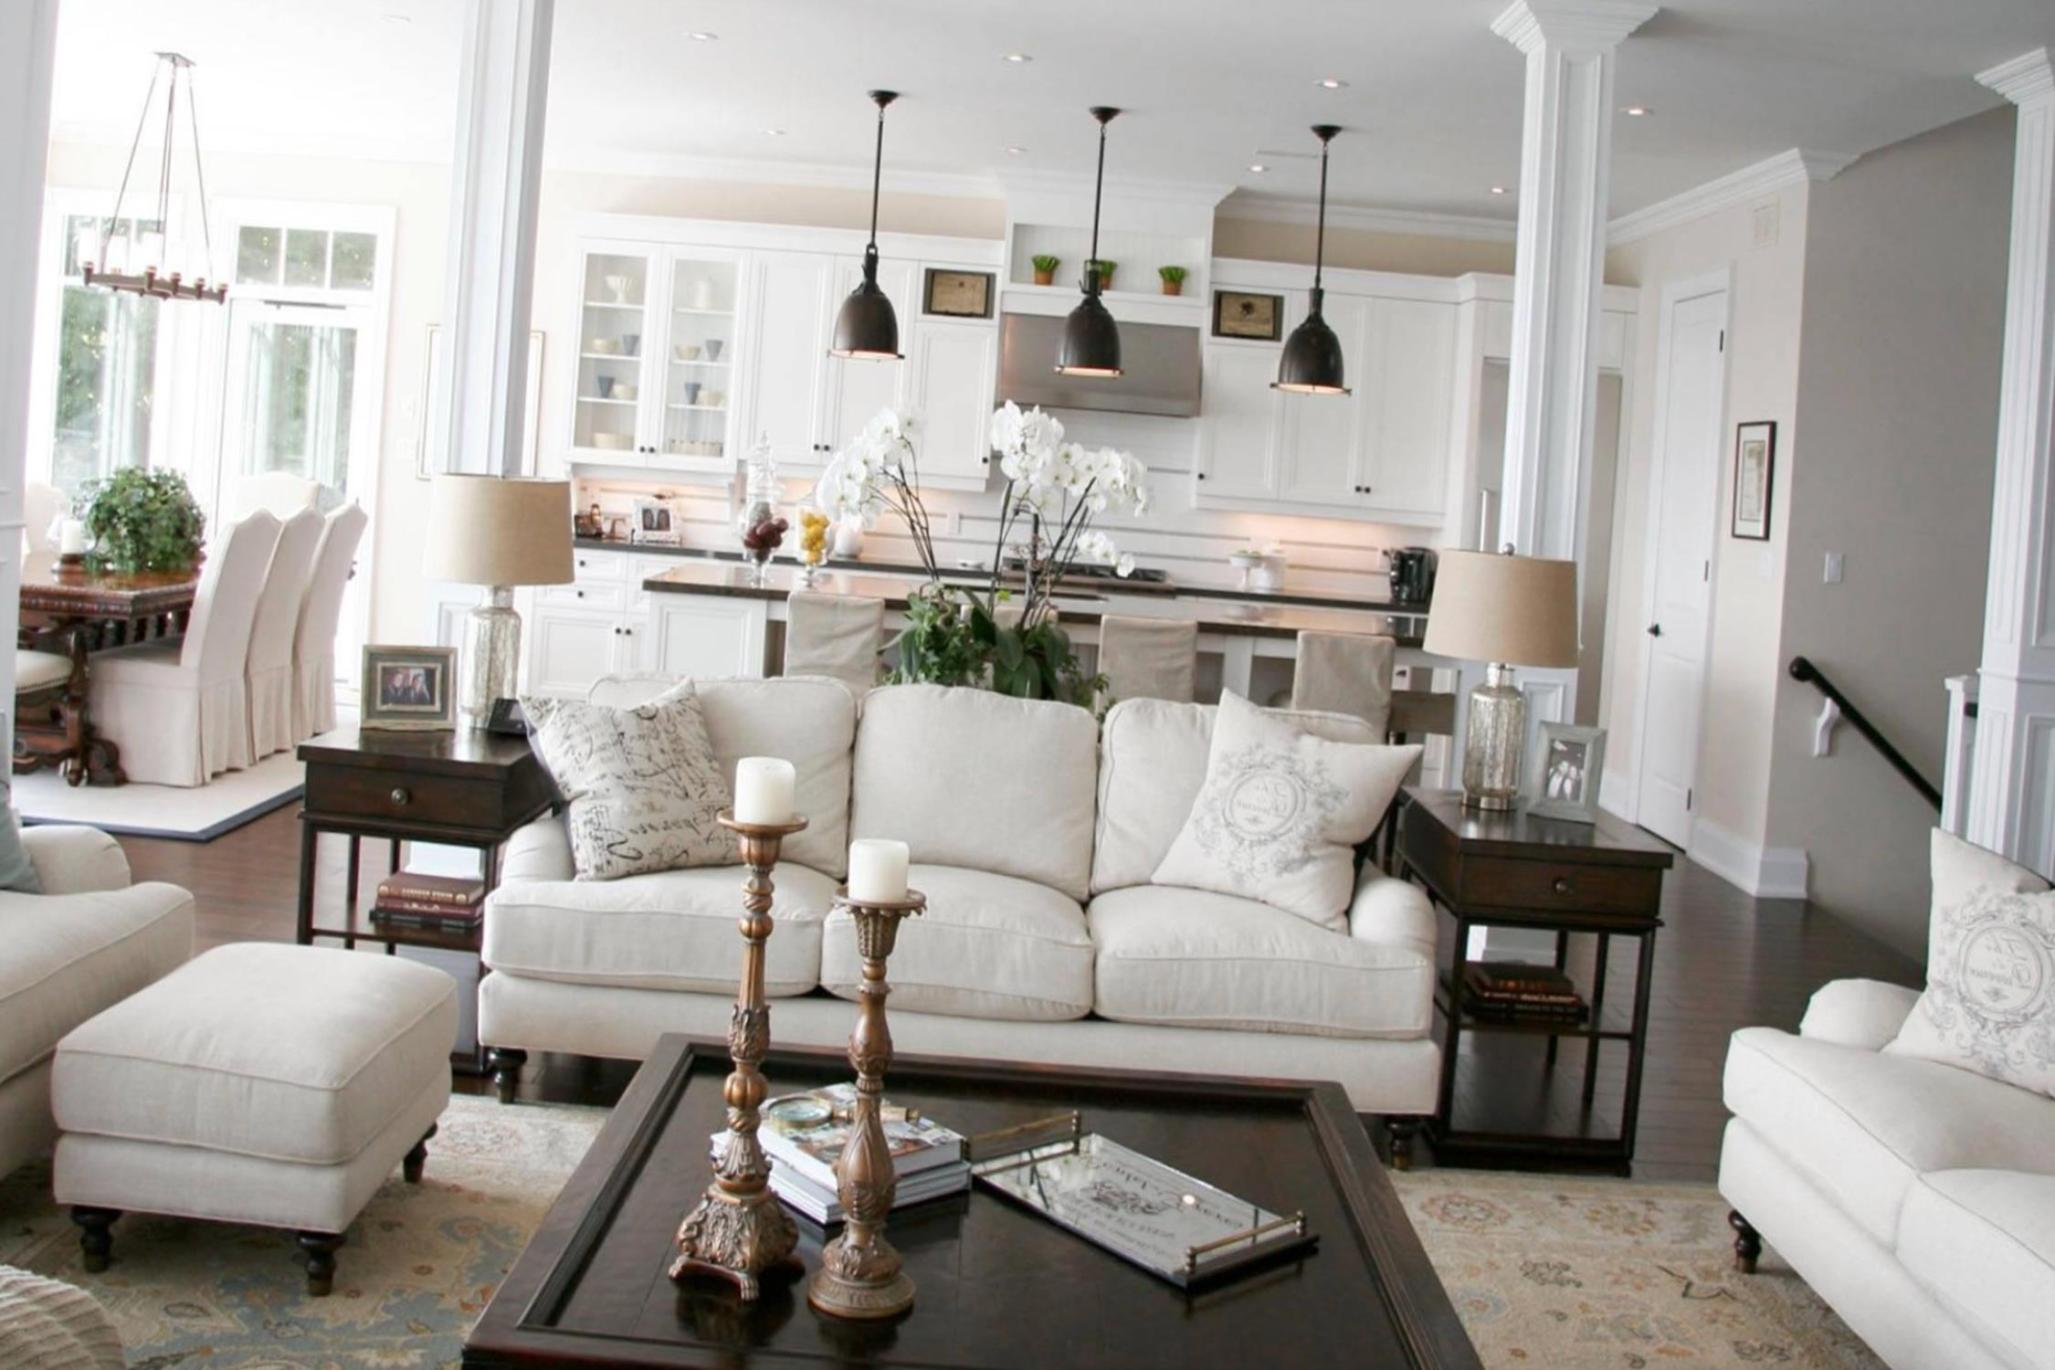 Shabby Chic Living Room Decorating on A Budget 8